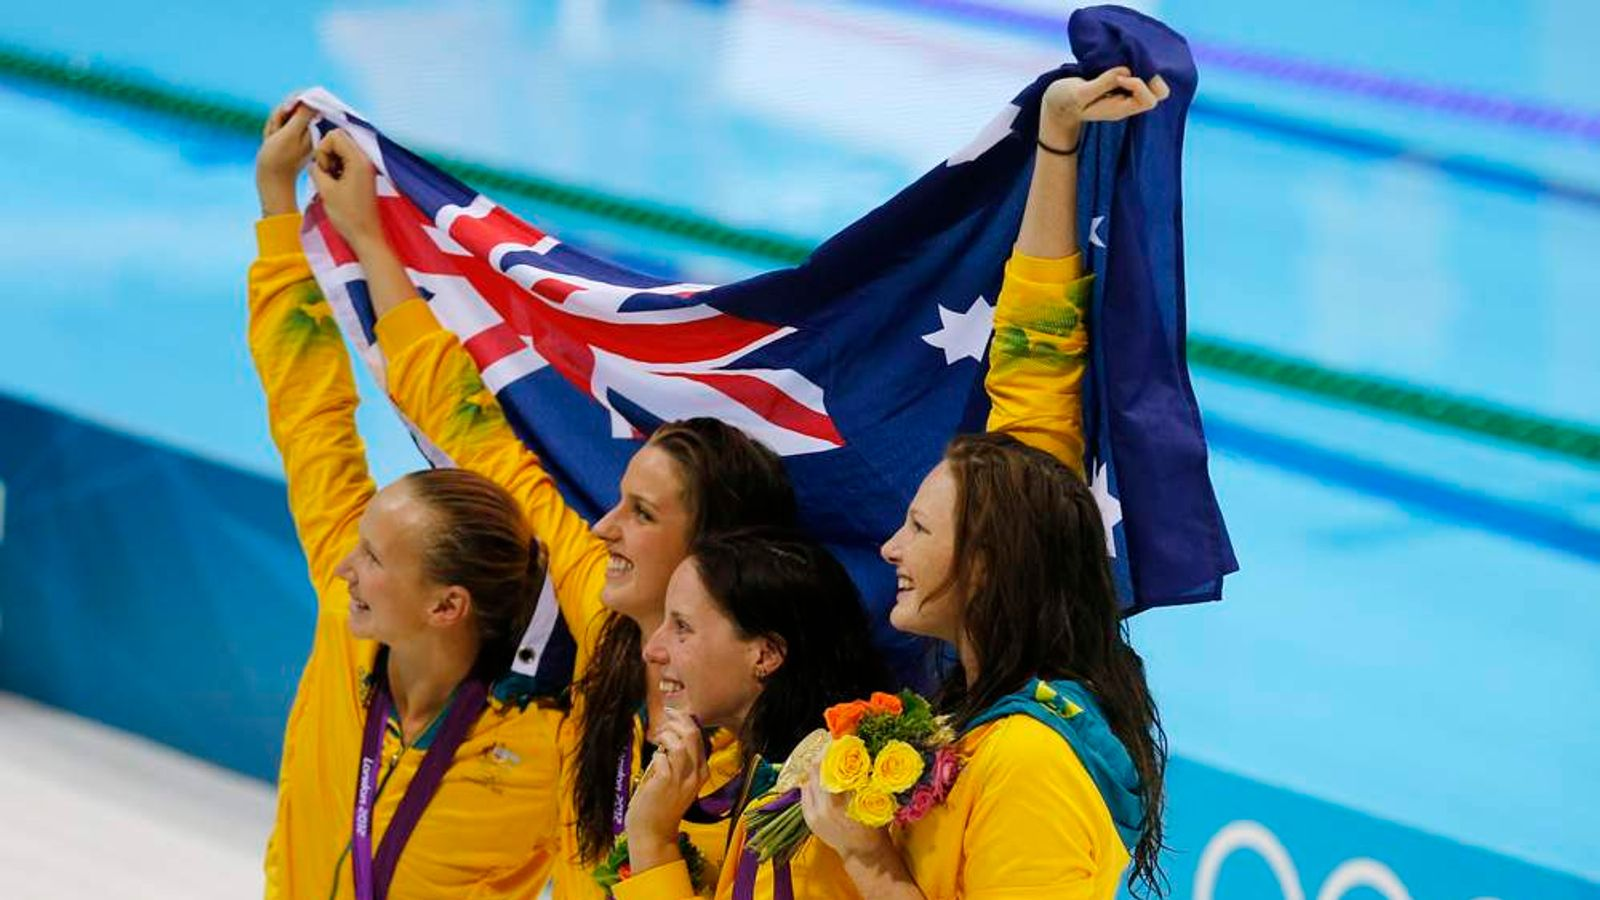 Gold medallists from Australia's team celebrate on the podium during the women's 4x100m freestyle relay victory ceremony at the London 2012 Olympic Games